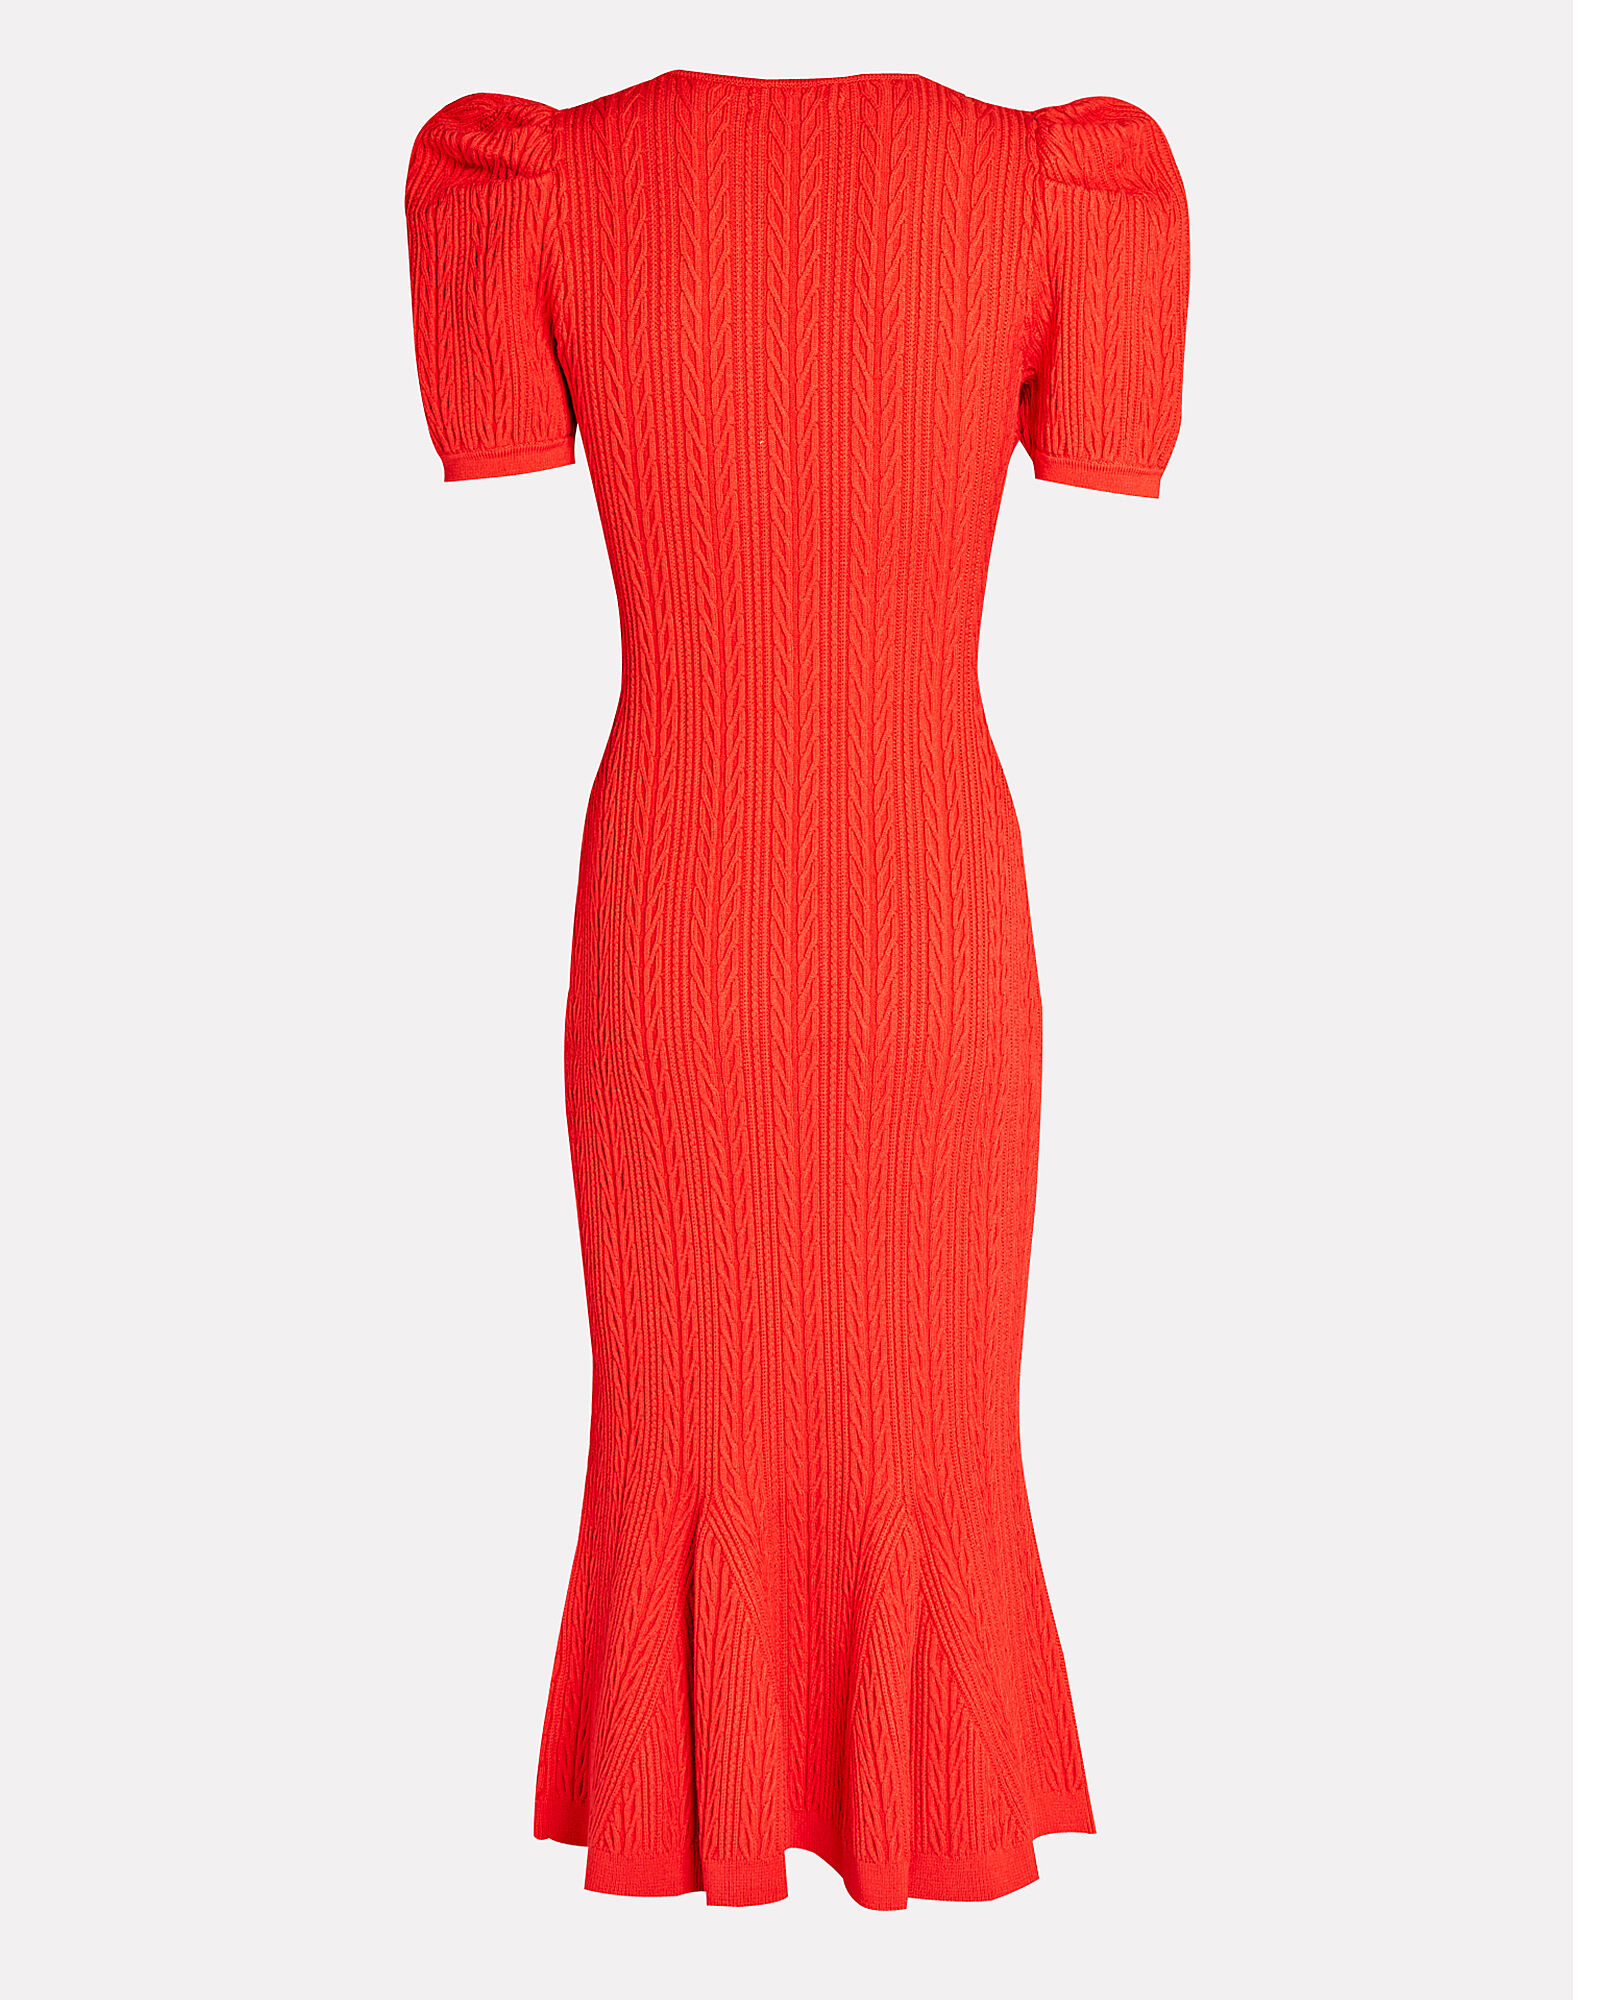 Marley Cable Knit Midi Dress, RED, hi-res